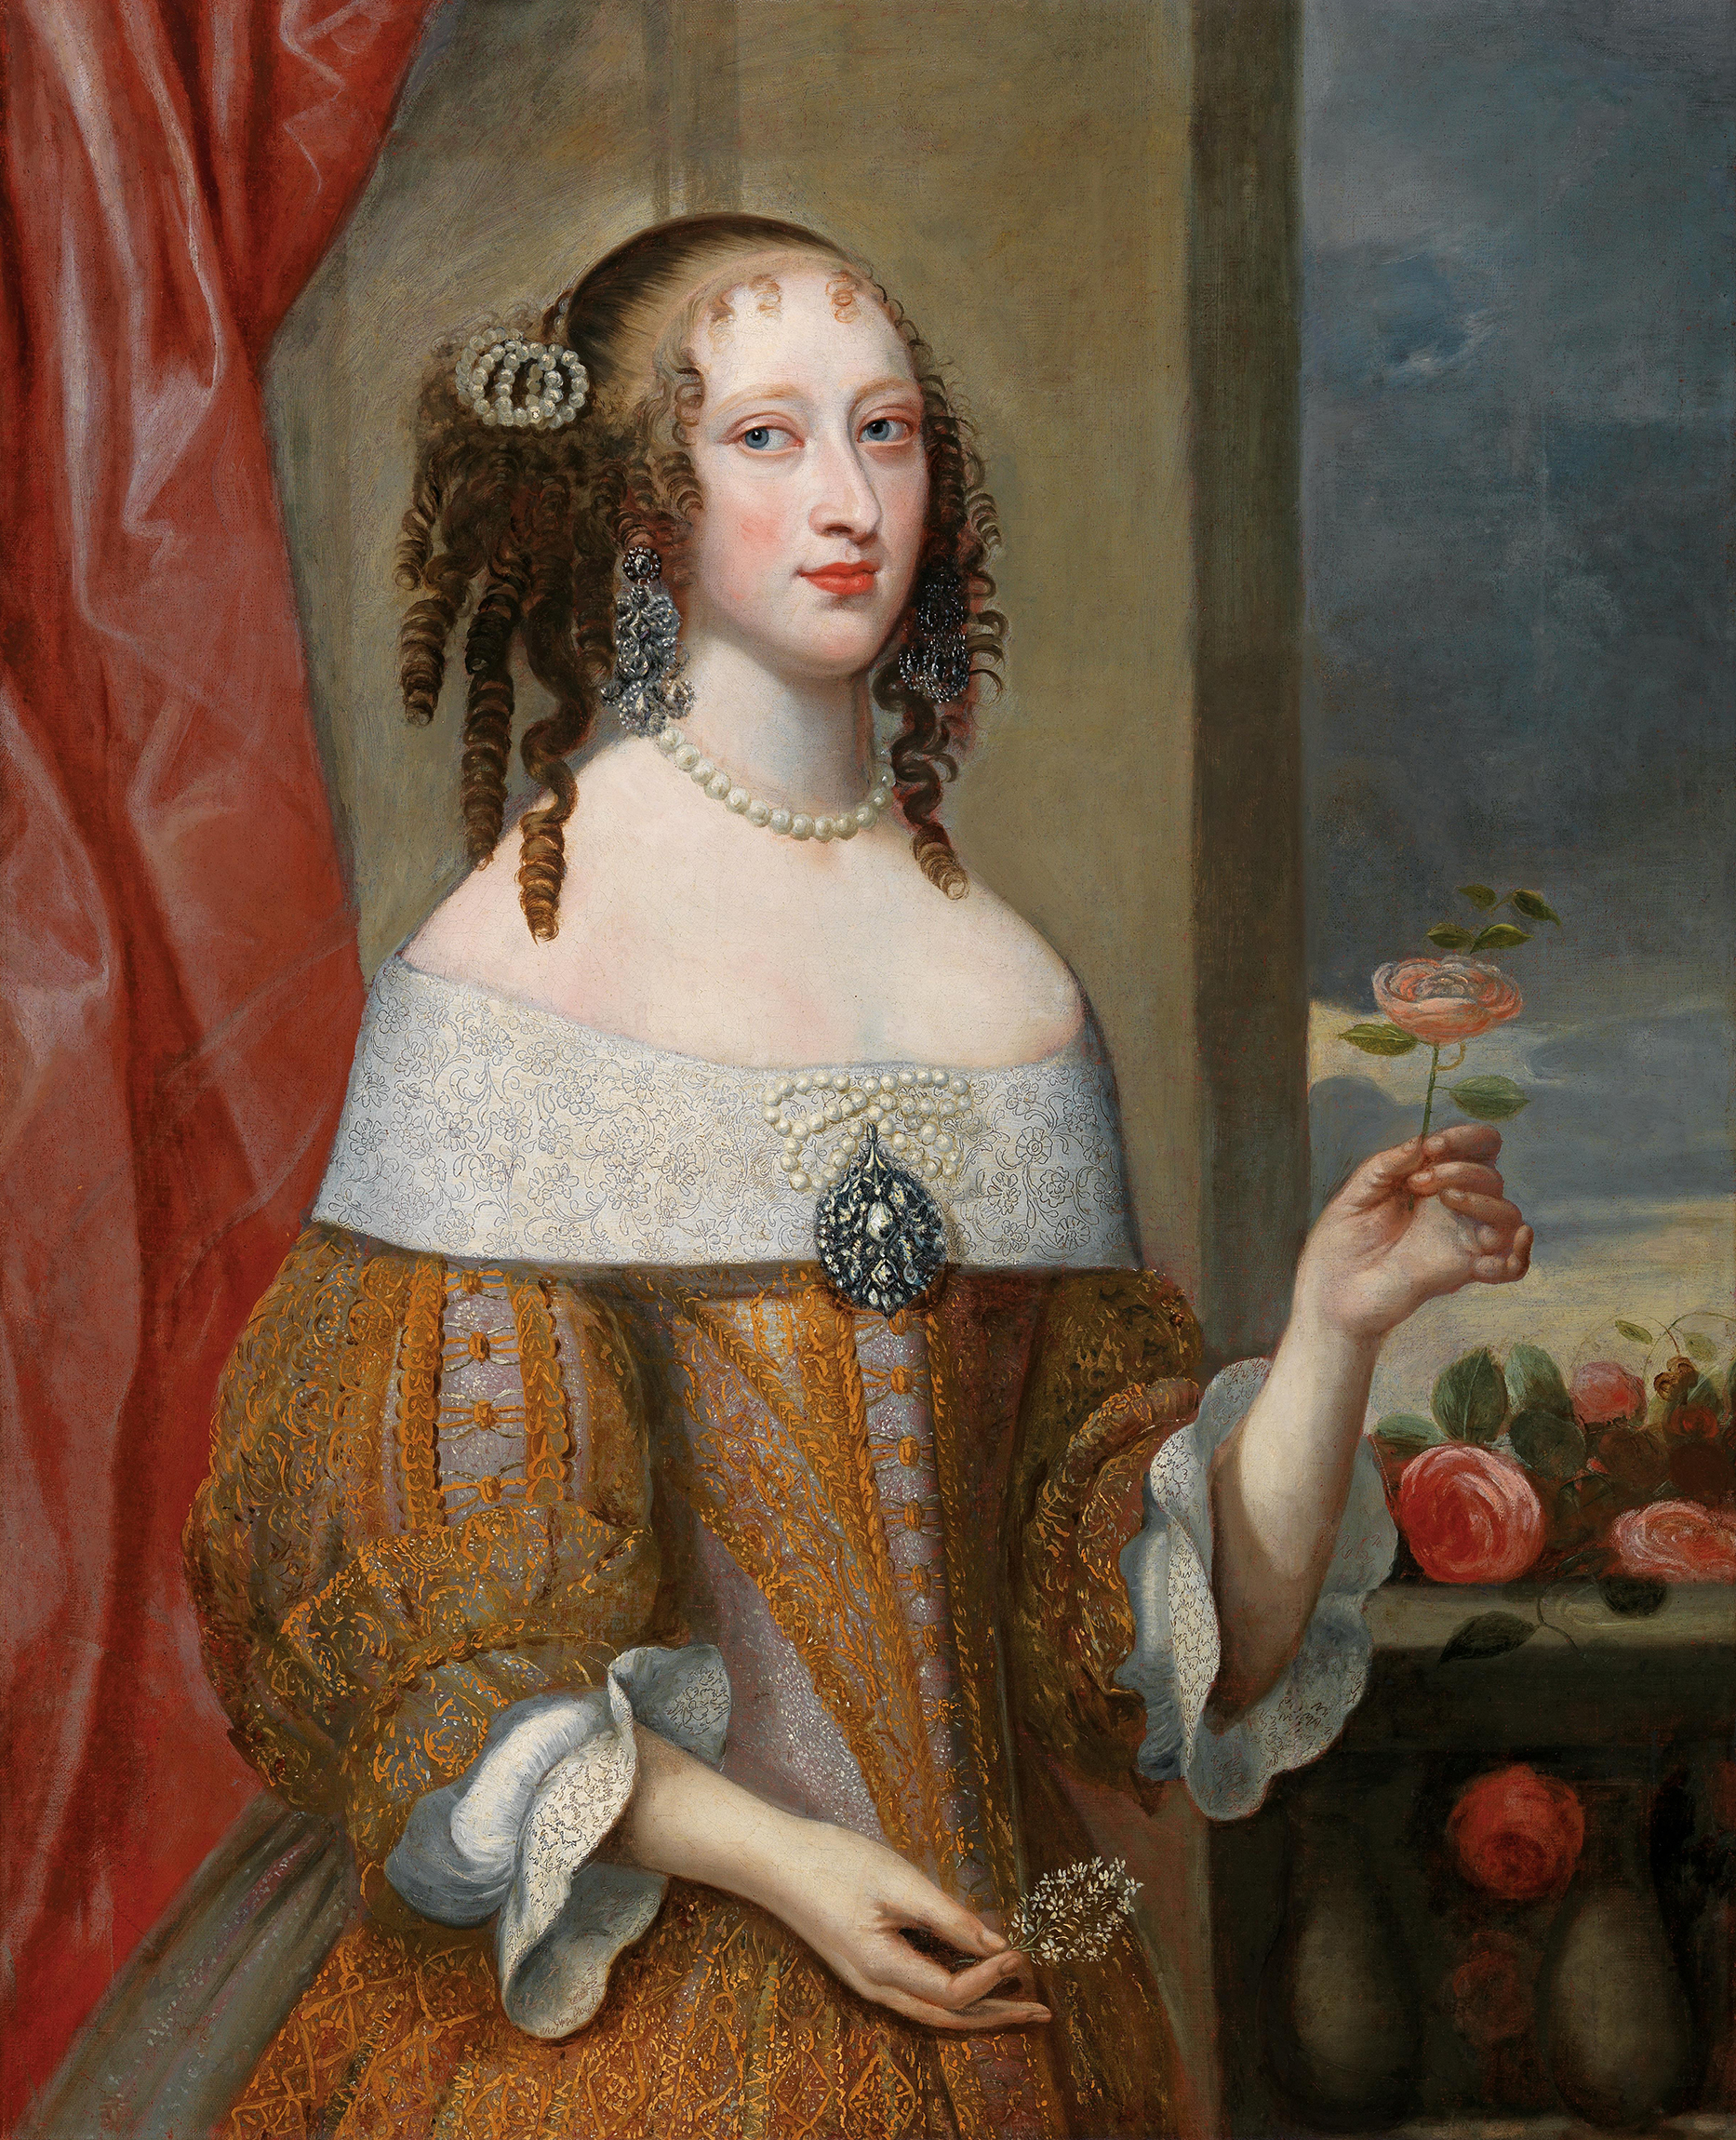 Portrait of Henriette Adelaide of Savoy (1636-1676), Electress of Bavaria (1651-1676) | Portraits of Kings